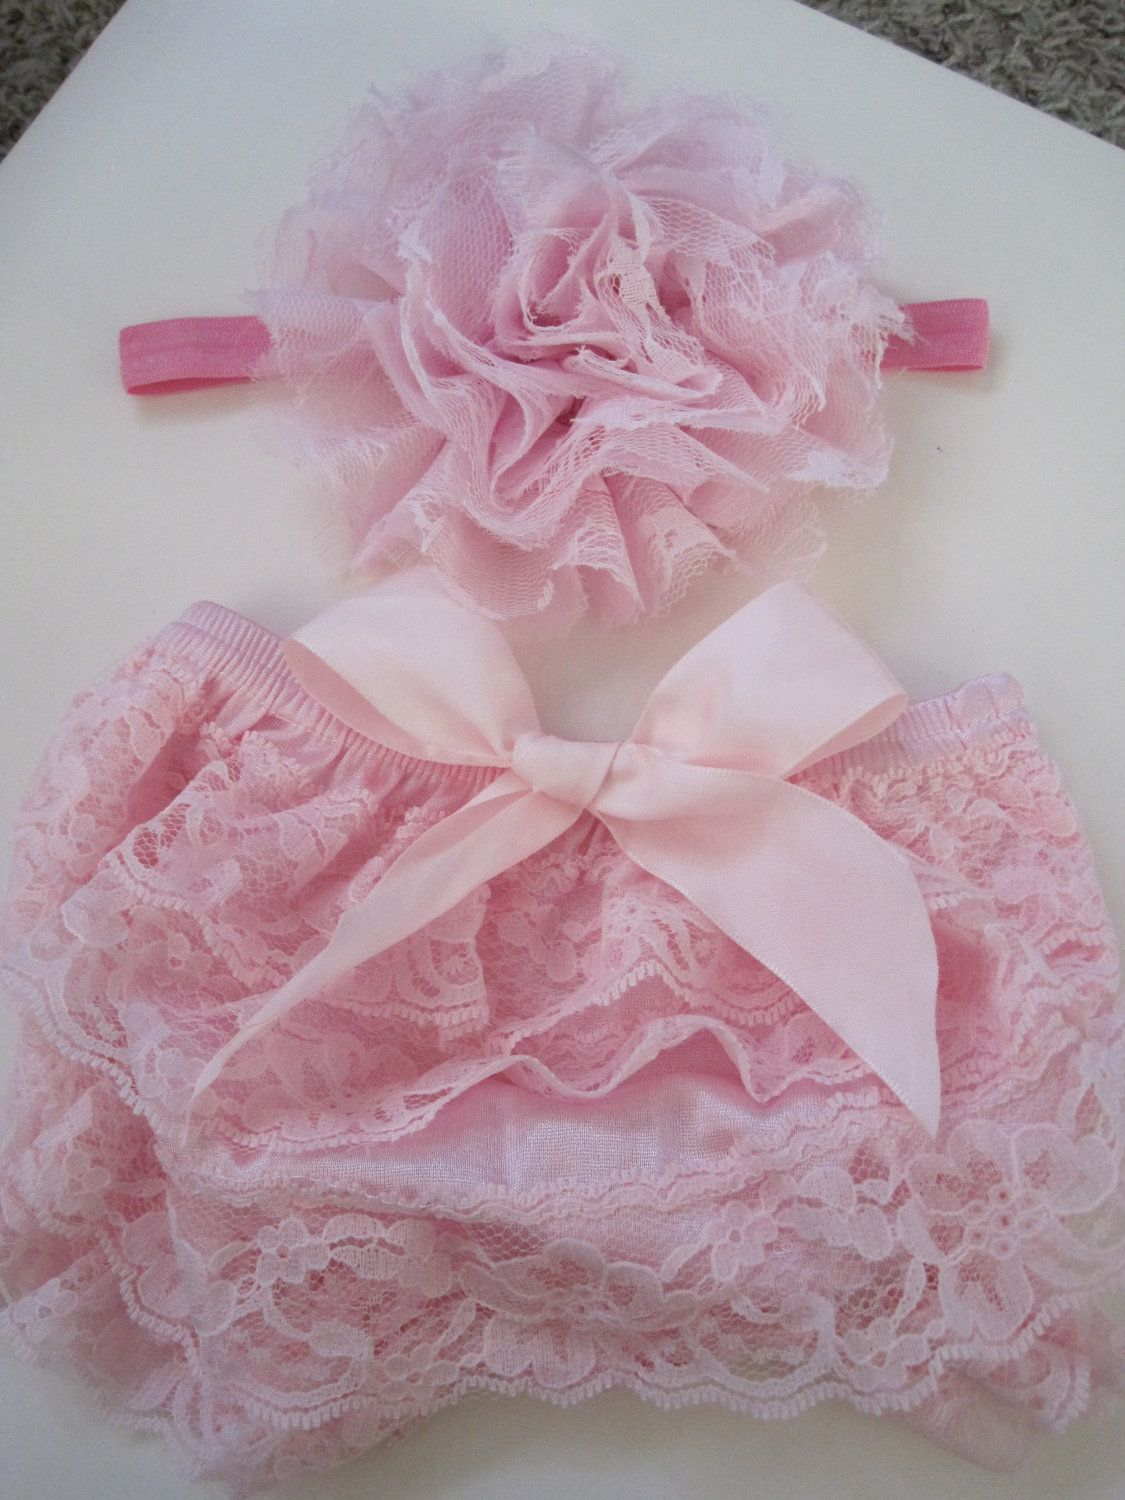 Lace Bloomer Set  Baby Girl Photo Prop by CakeForBaby on Etsy, $14.99